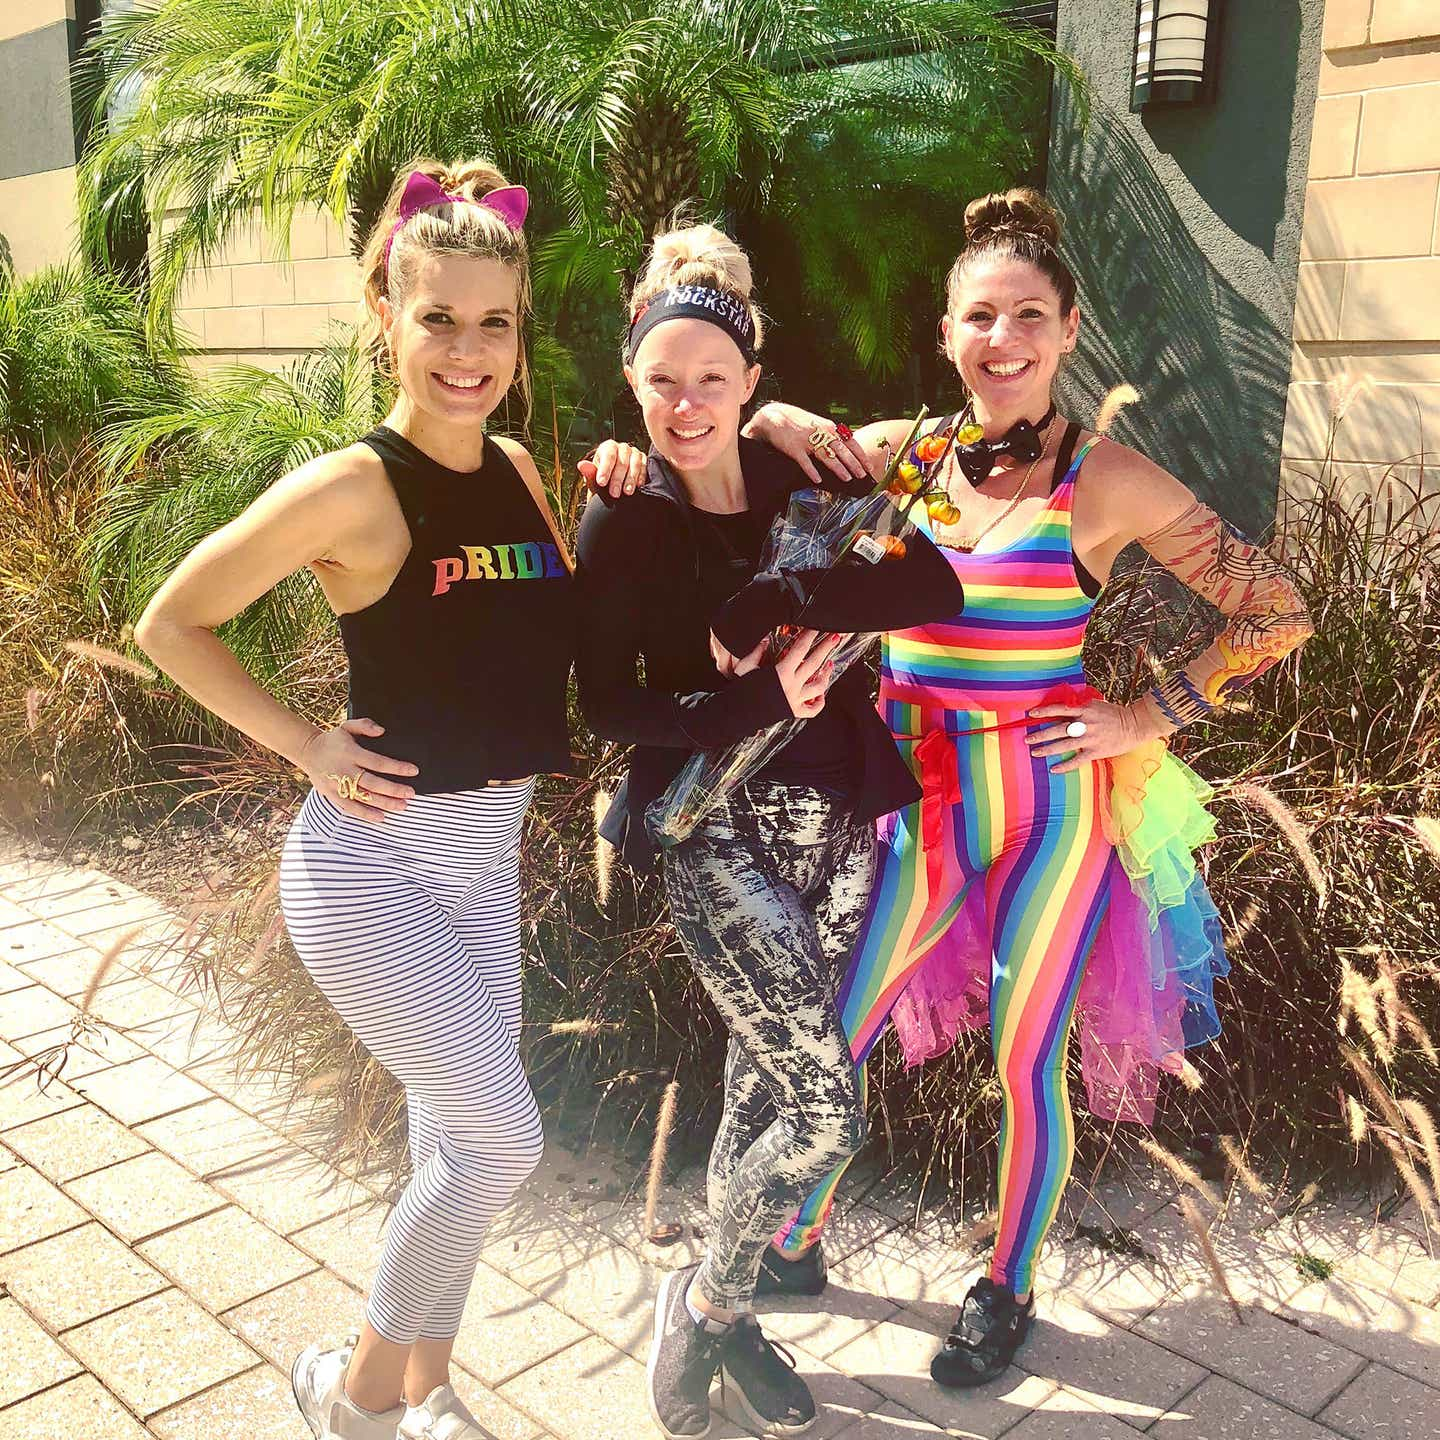 From left to right: Co-authors, Jessica, Molly and Christine wear PRIDE-inspired outfits together outdoors.